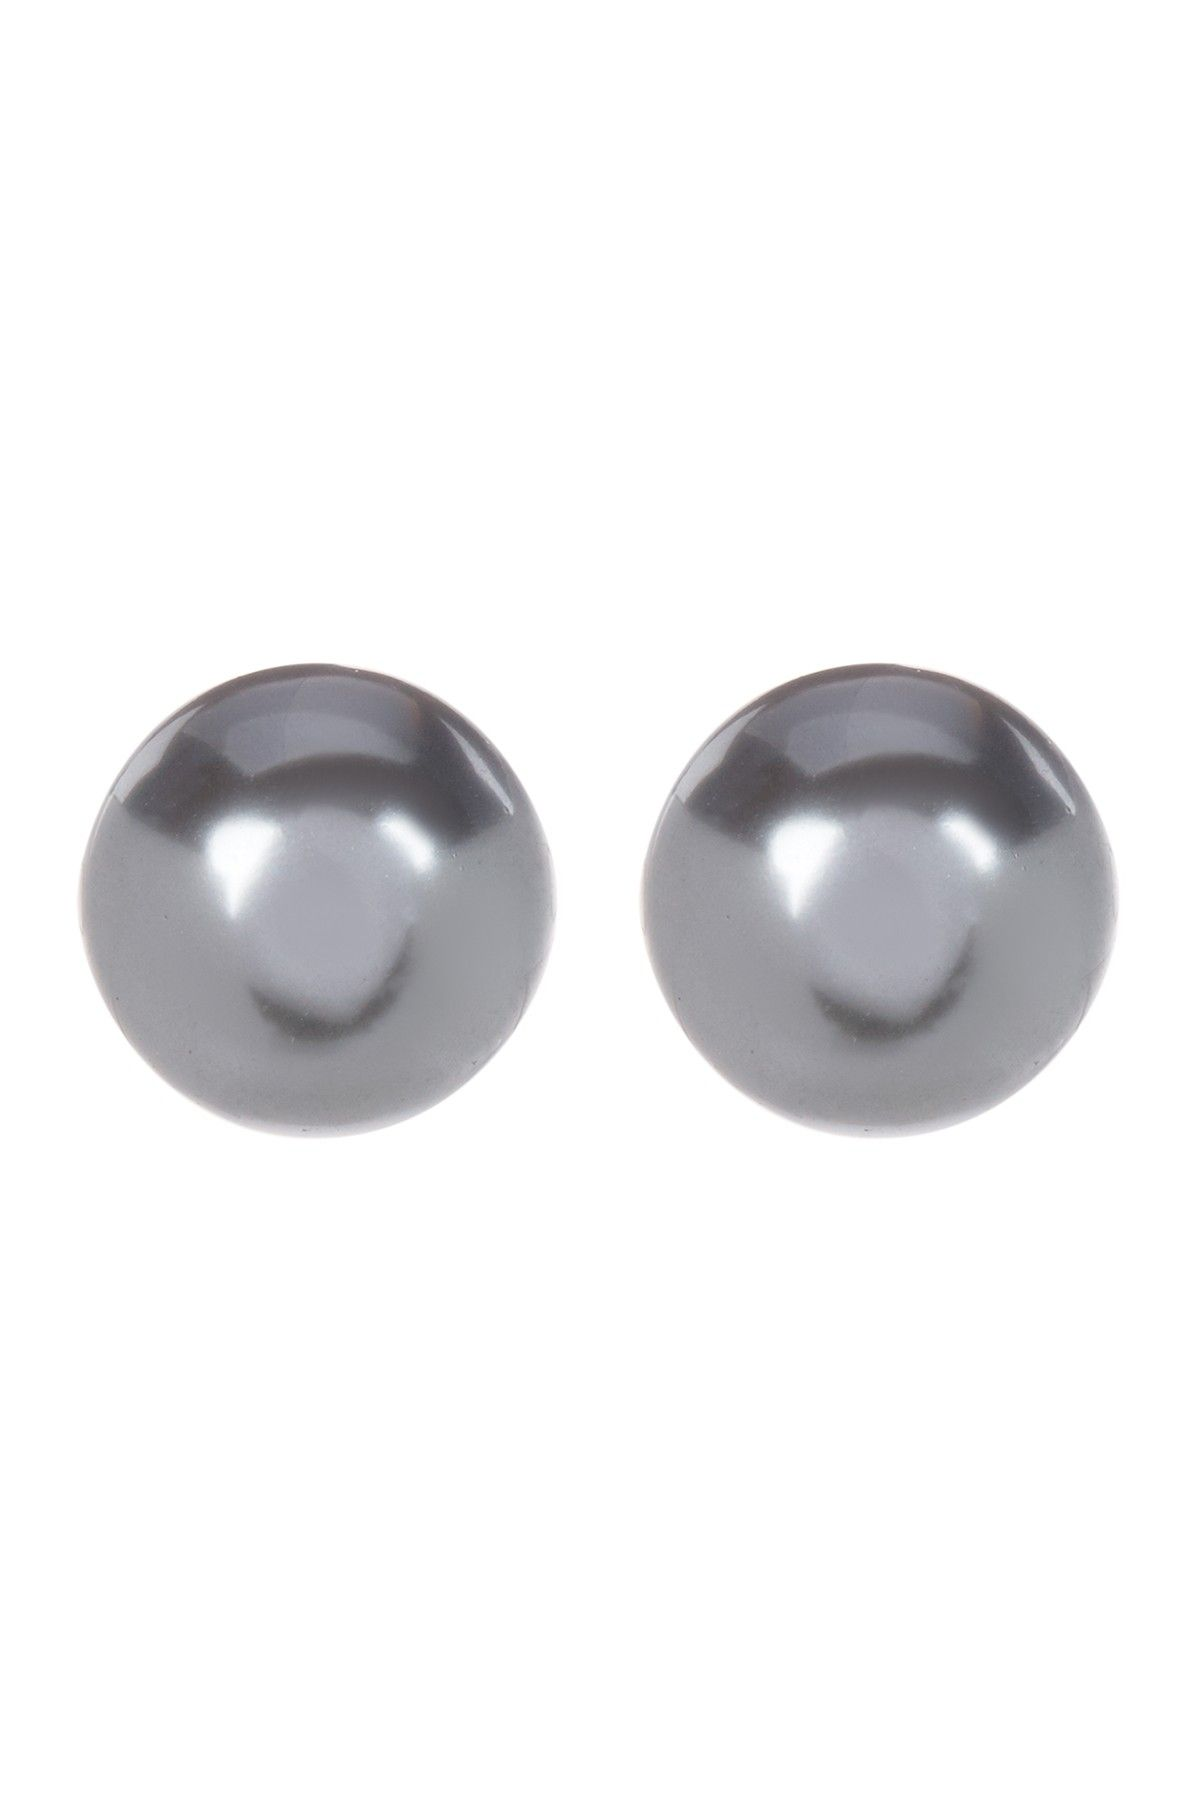 c stud s earrings pearl nordstrom women